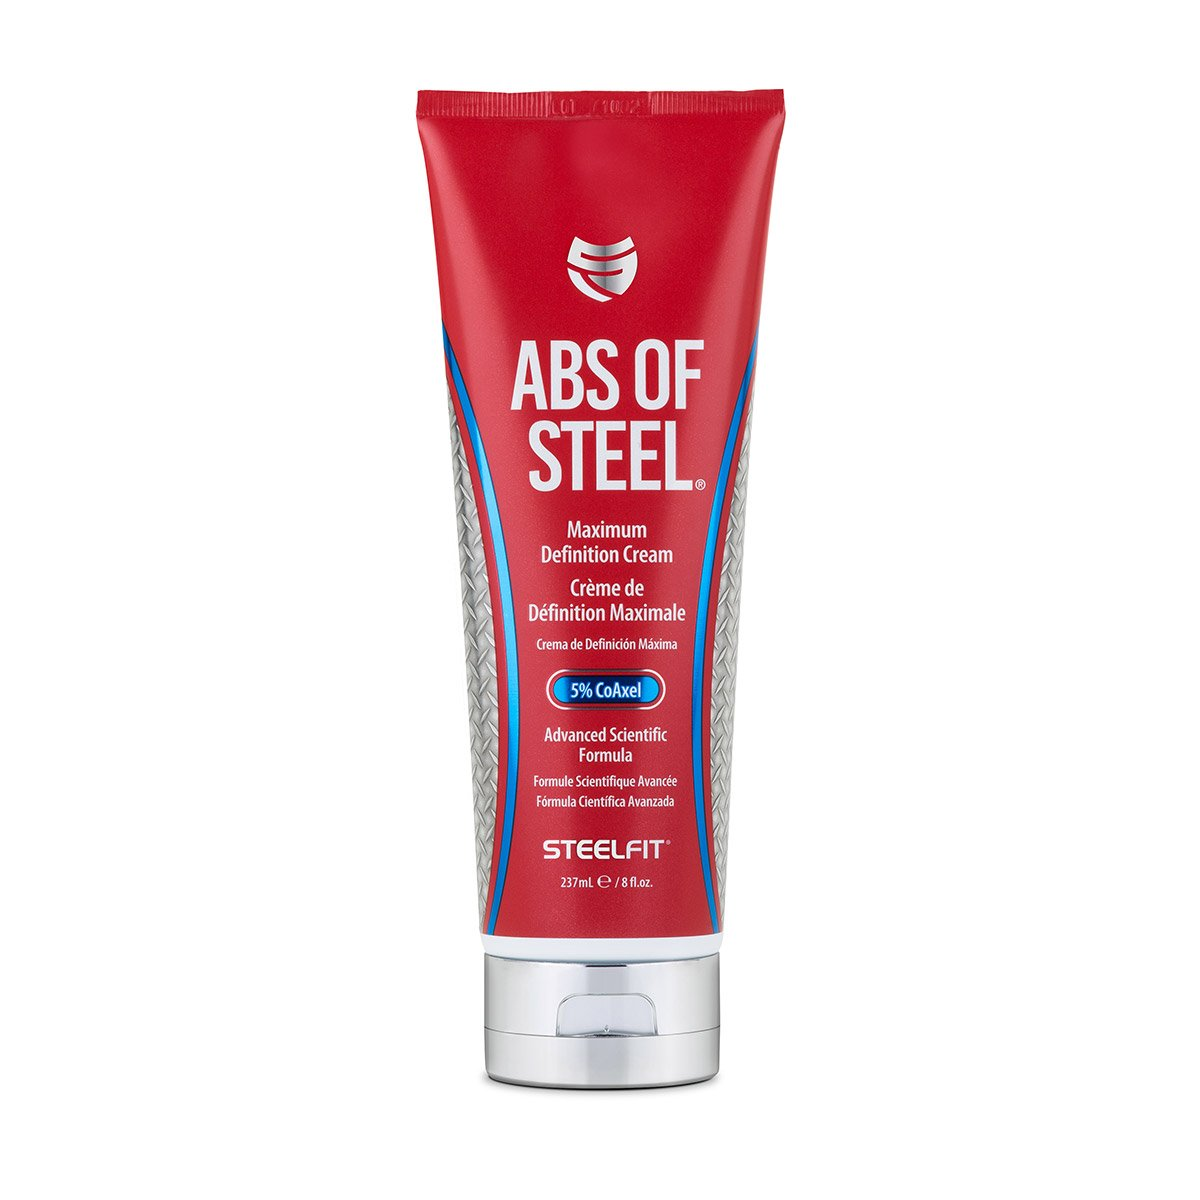 SteelFit Abs of Steel Maximum Definition Cream with 5% Coaxel, 8 fl oz (237ml). Performance Brands Inc. 732907051471